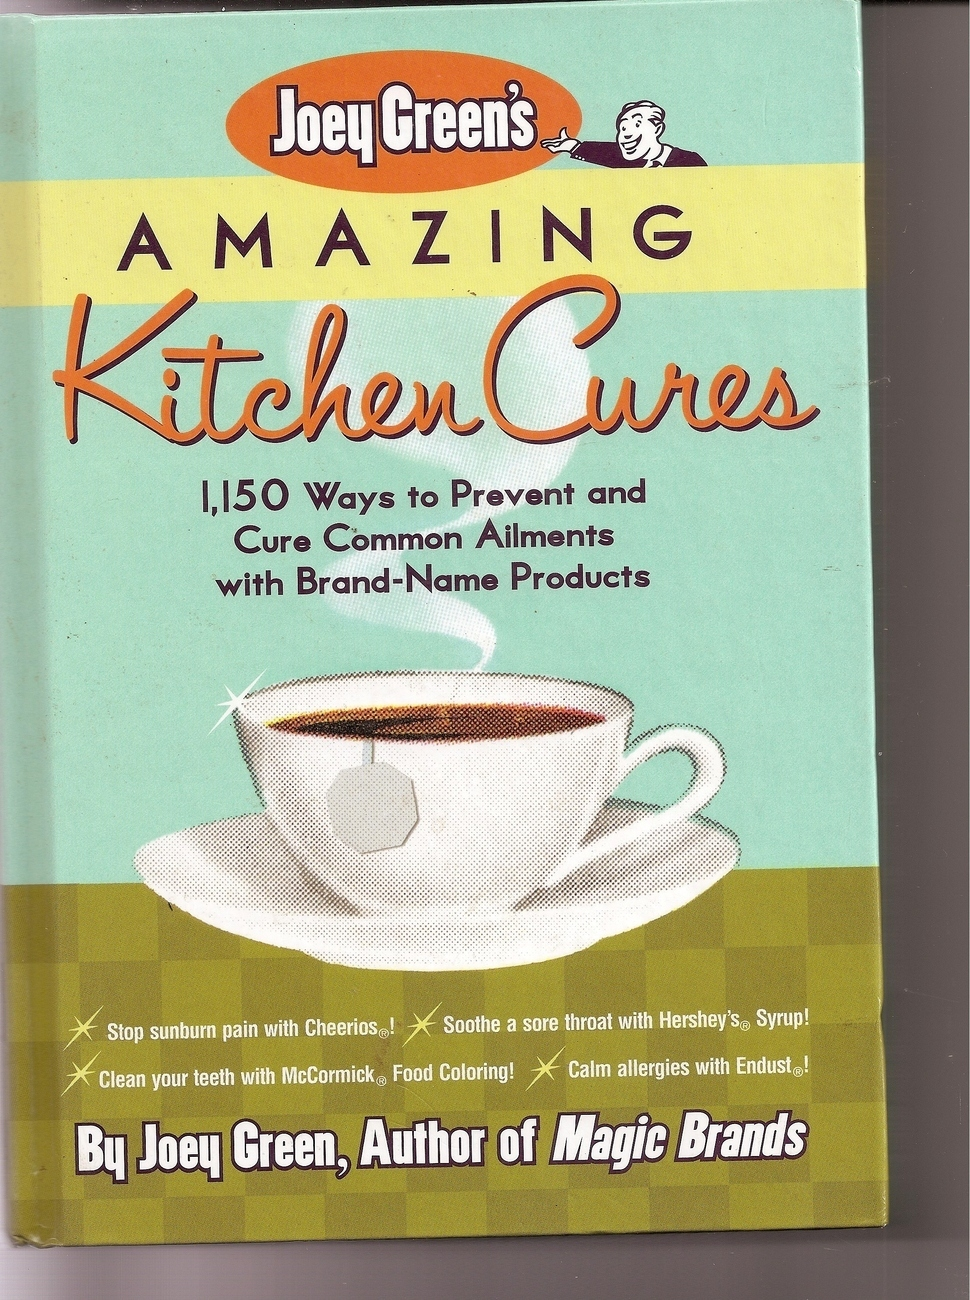 Joey Greens Amazing Kitchen Cures 1150 Ways to Prevent Cure